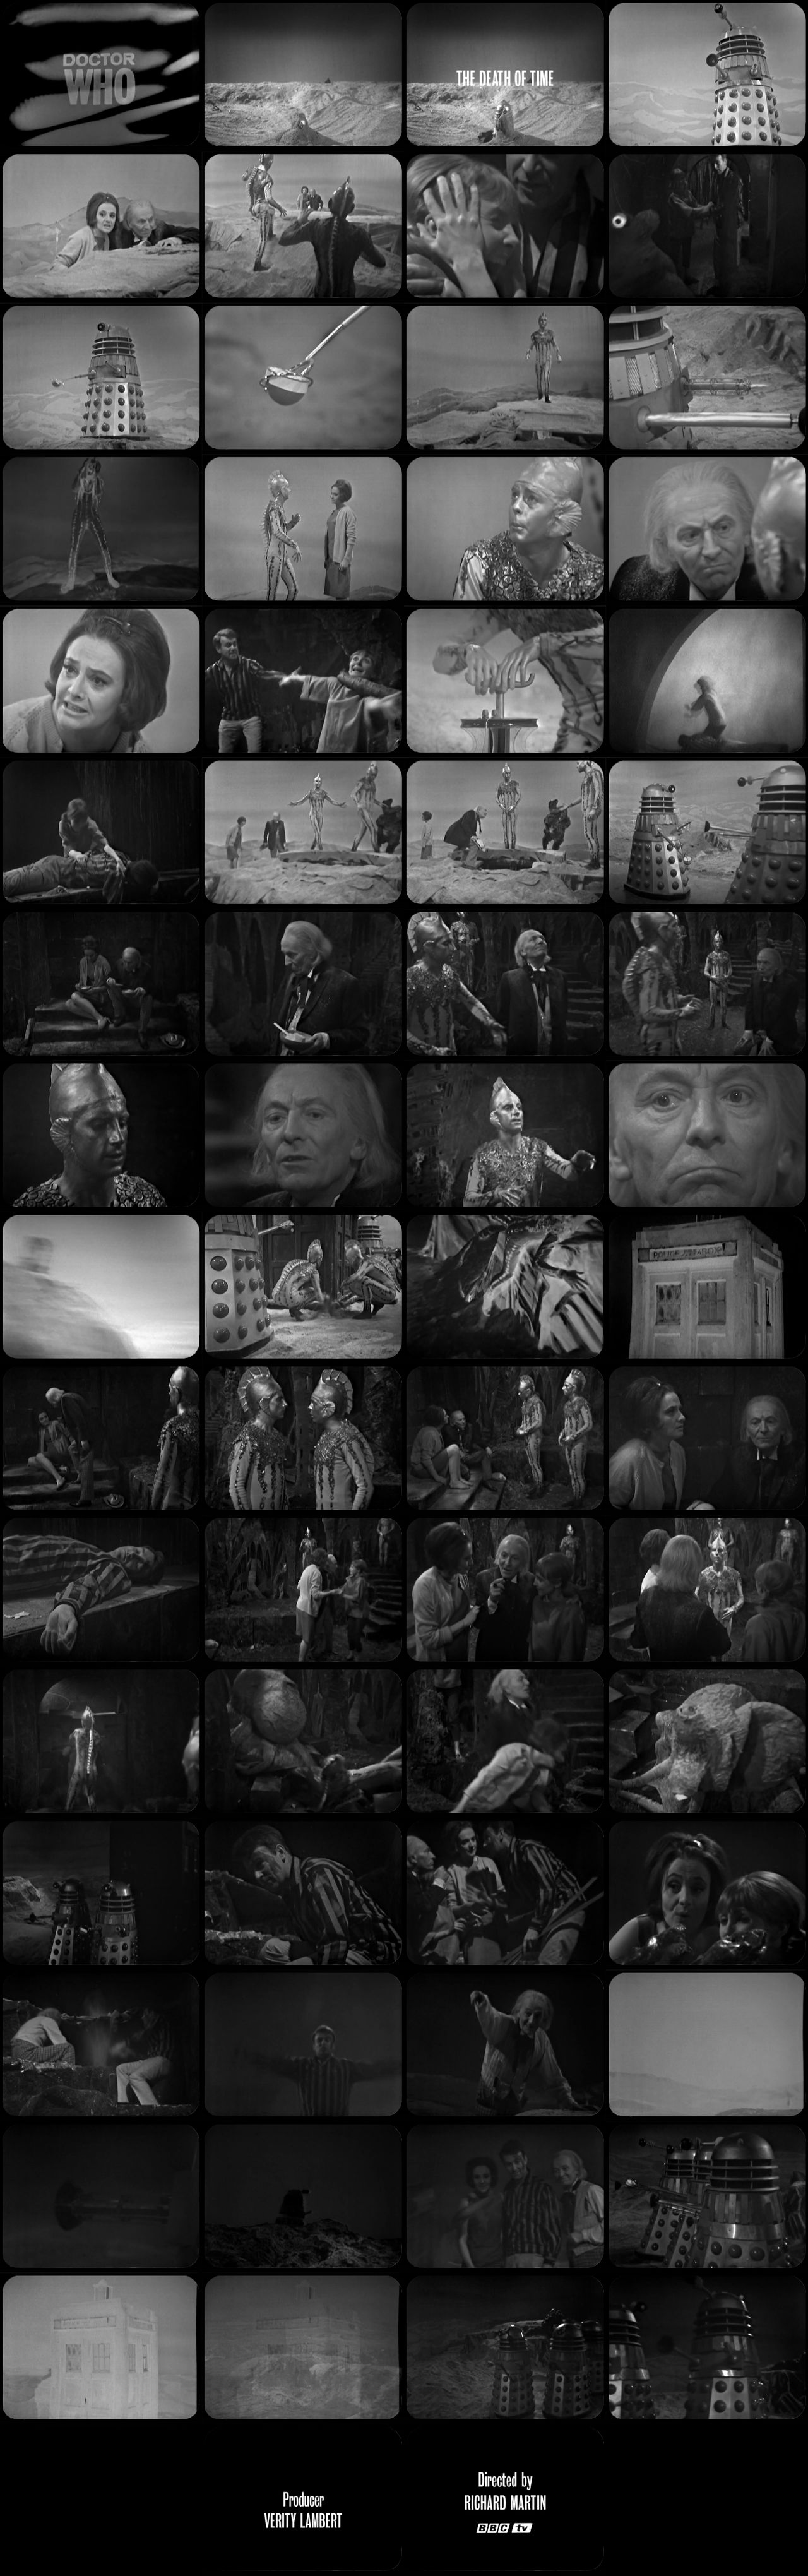 The Chase Episode 2 Tele-Snaps